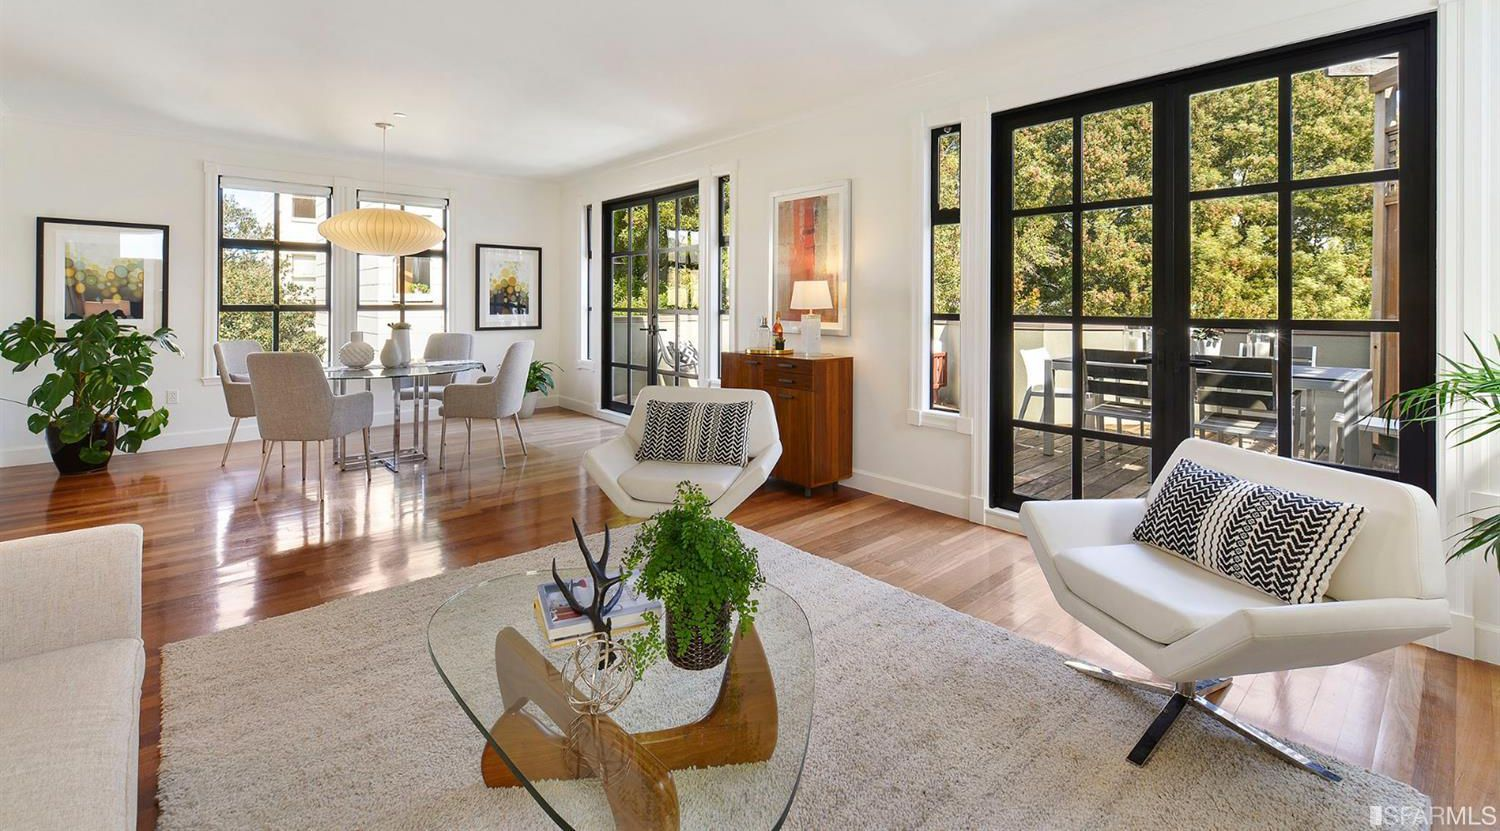 420 Stanyan - 1 bed | 1 bath | Location + Outdoor Space | $895,000